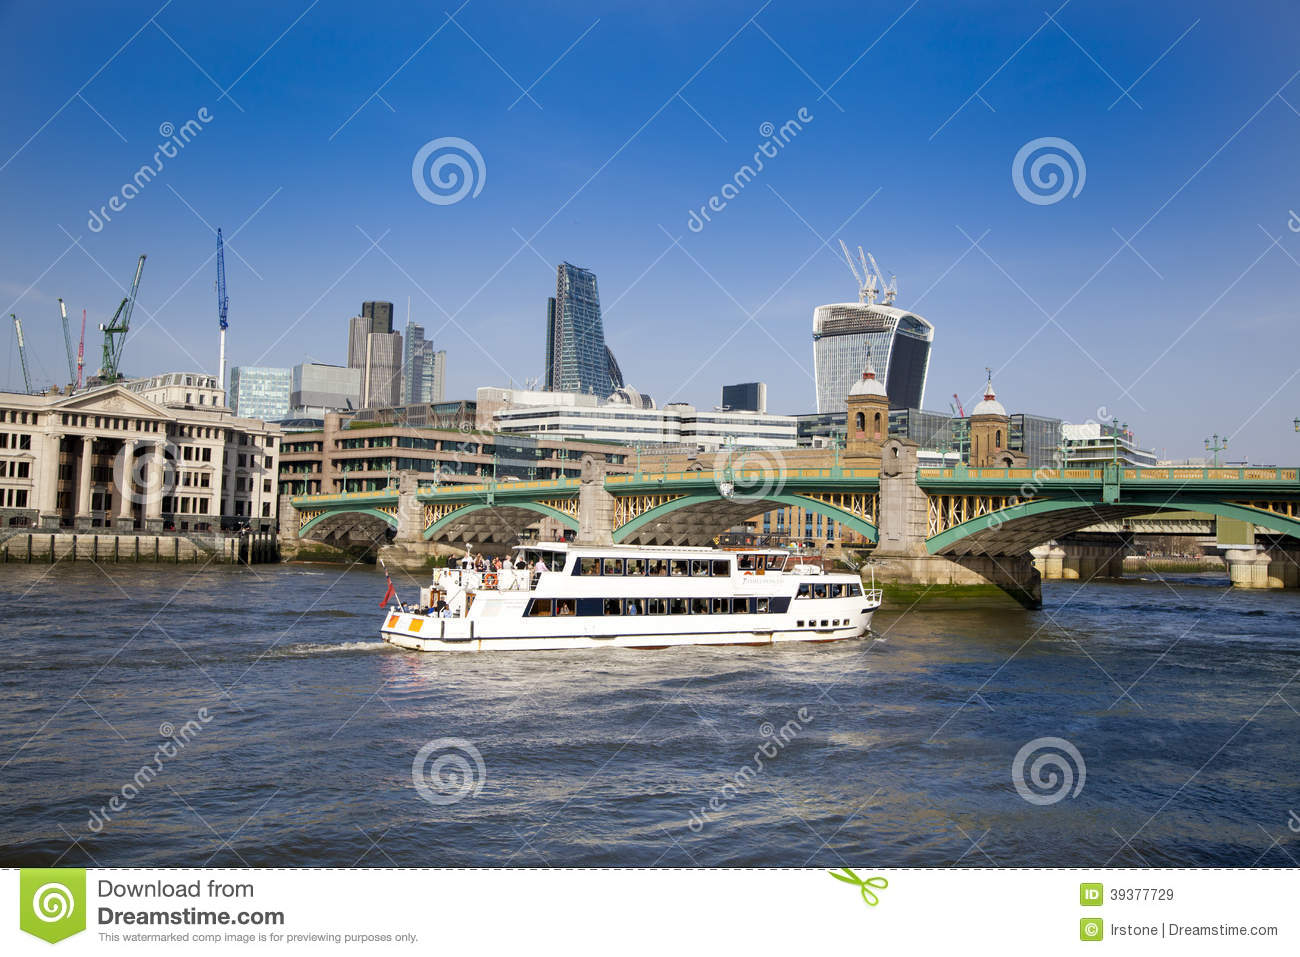 ... 29, 2014 South bank walk of the river Thames Editorial Stock Image